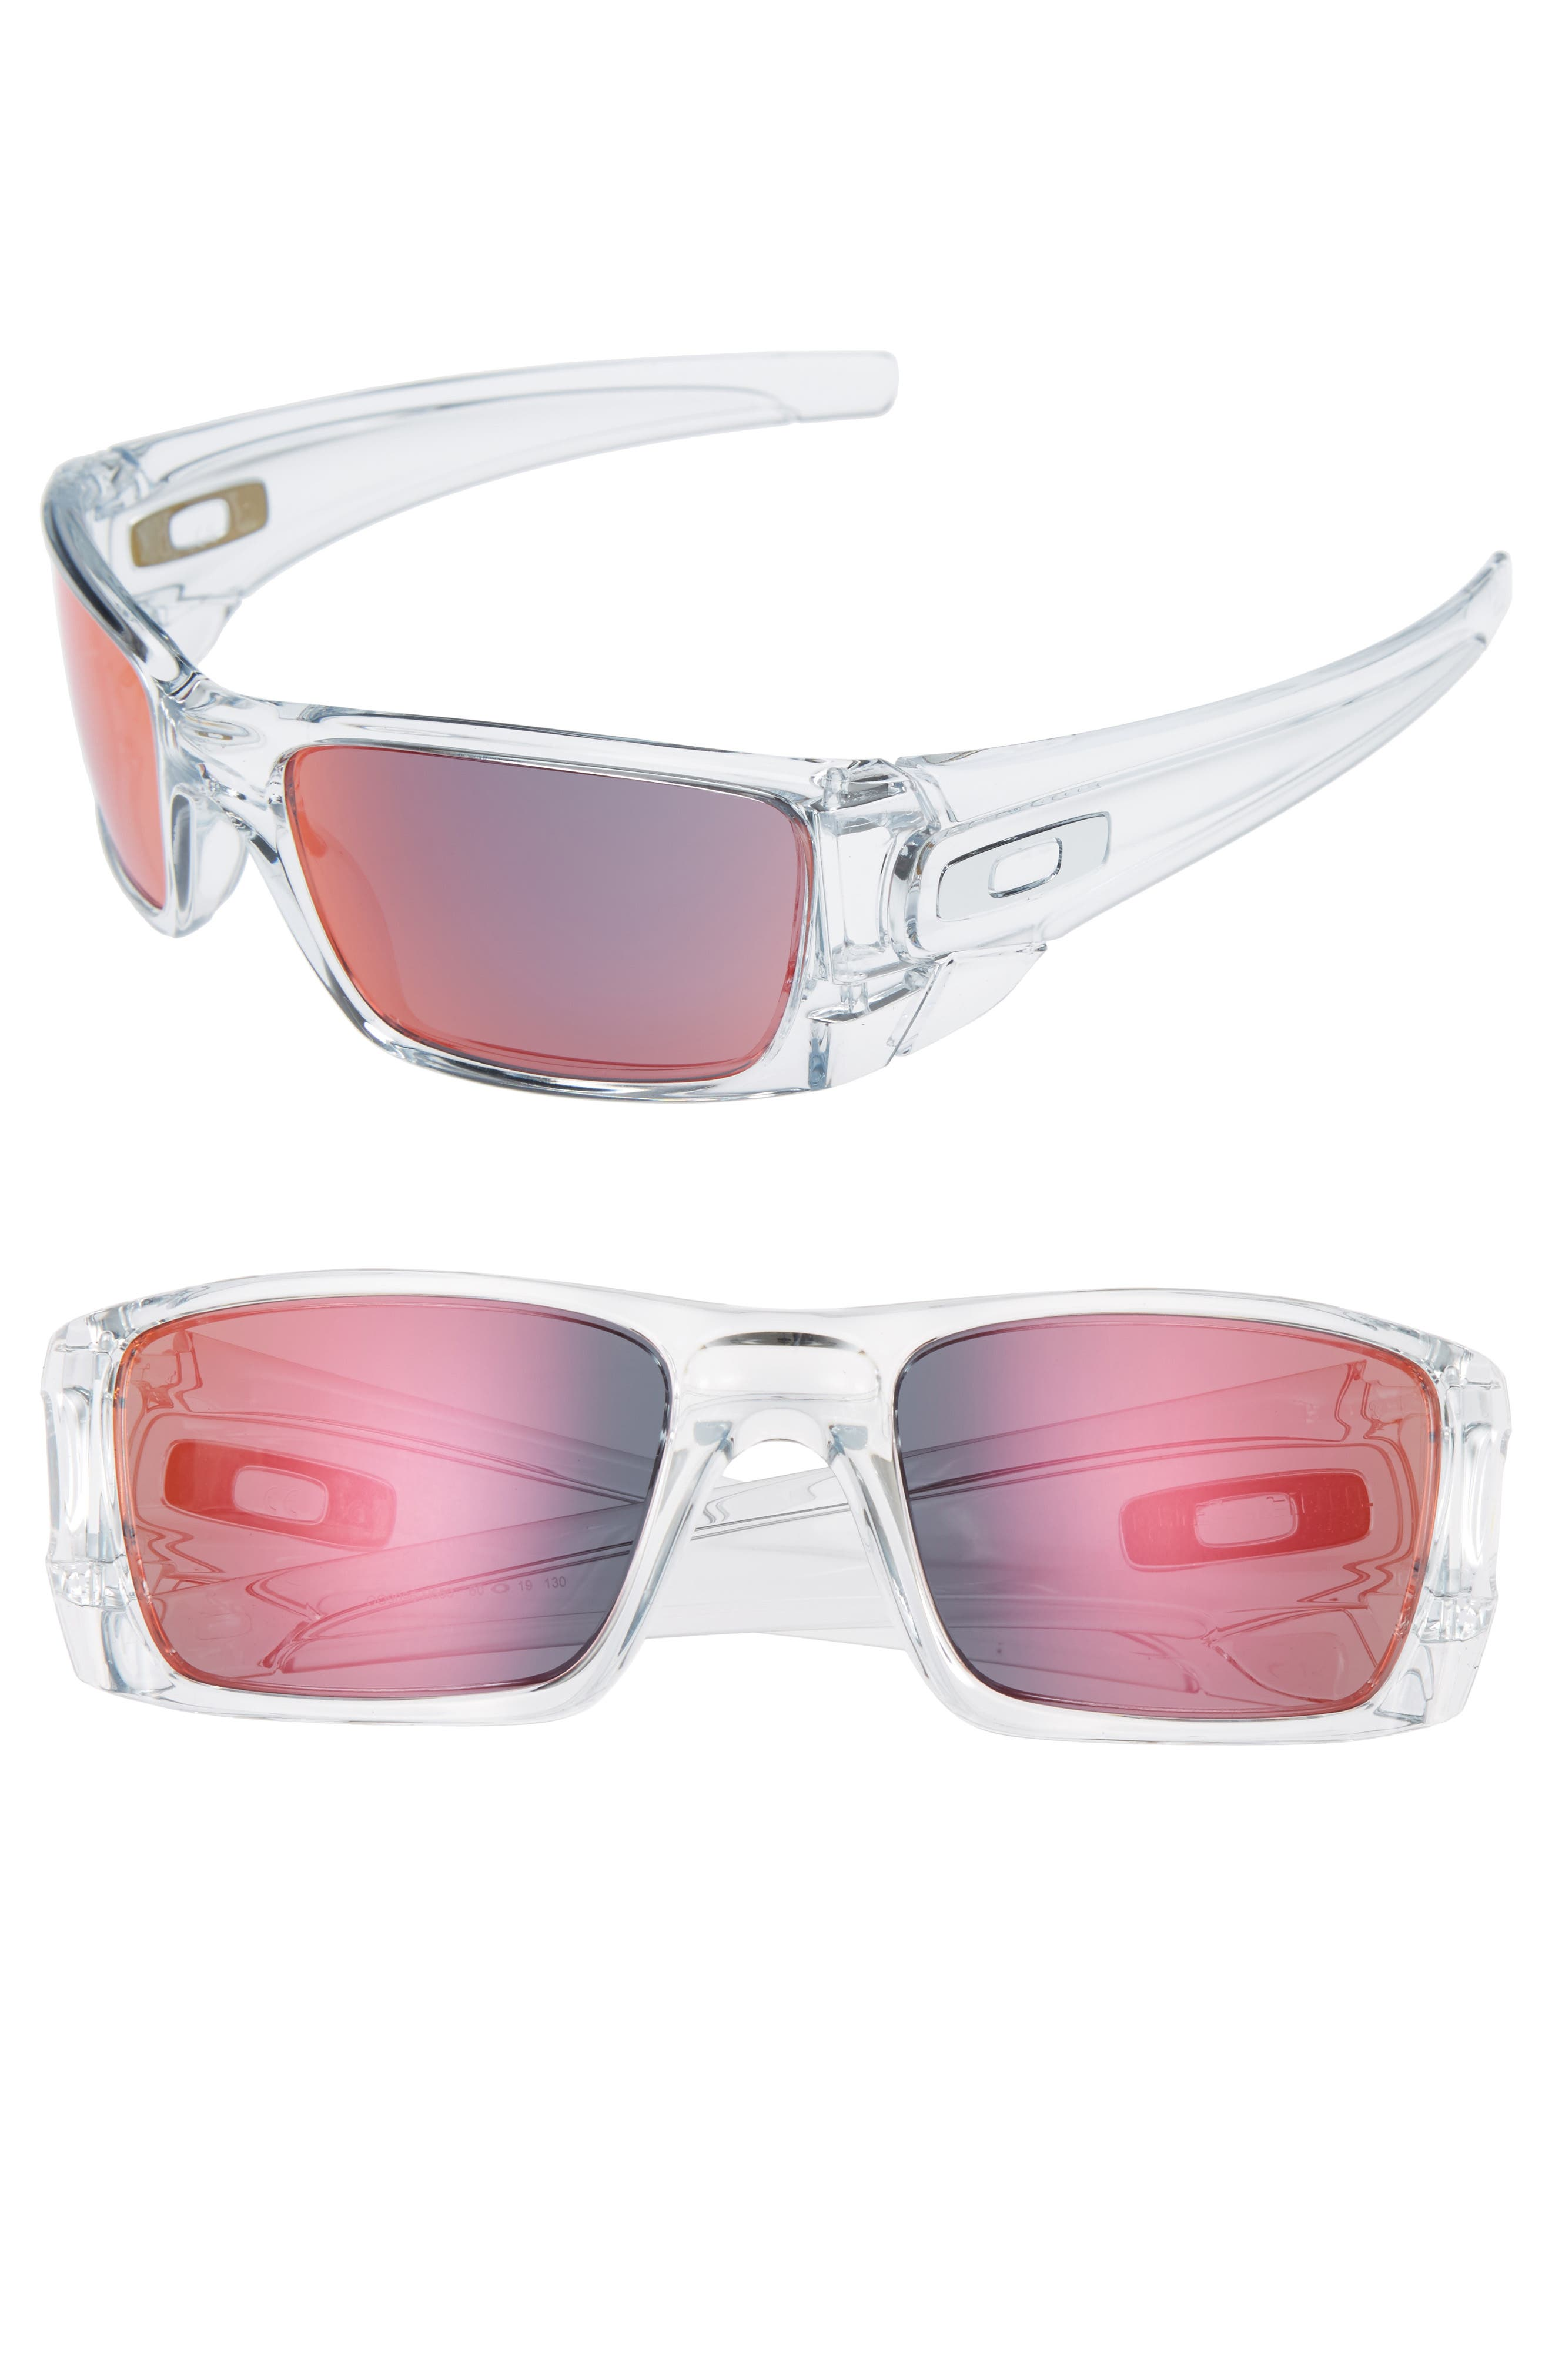 Oakley Fuel Cell 60mm Sunglasses